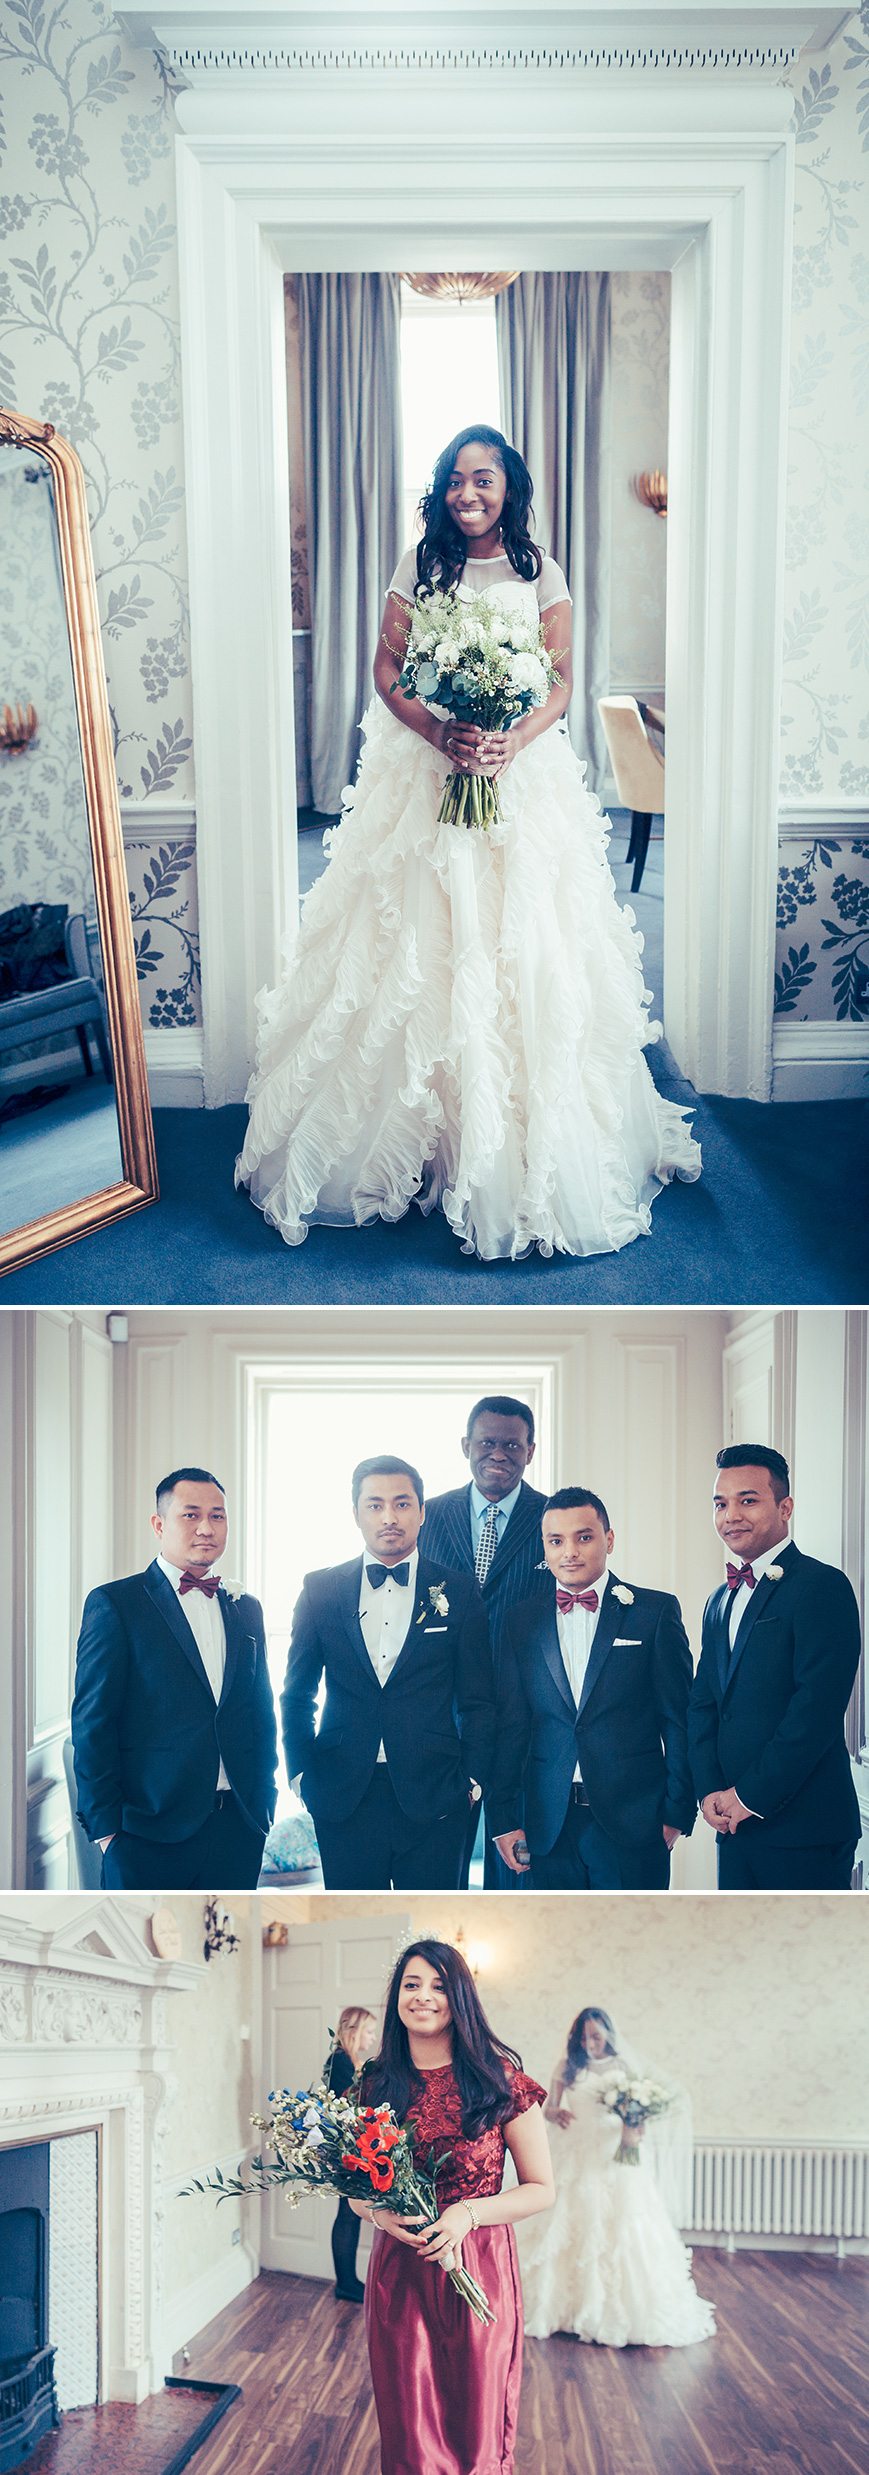 Angela and Praj's Handmade Wedding in London - Outfits | CHWV